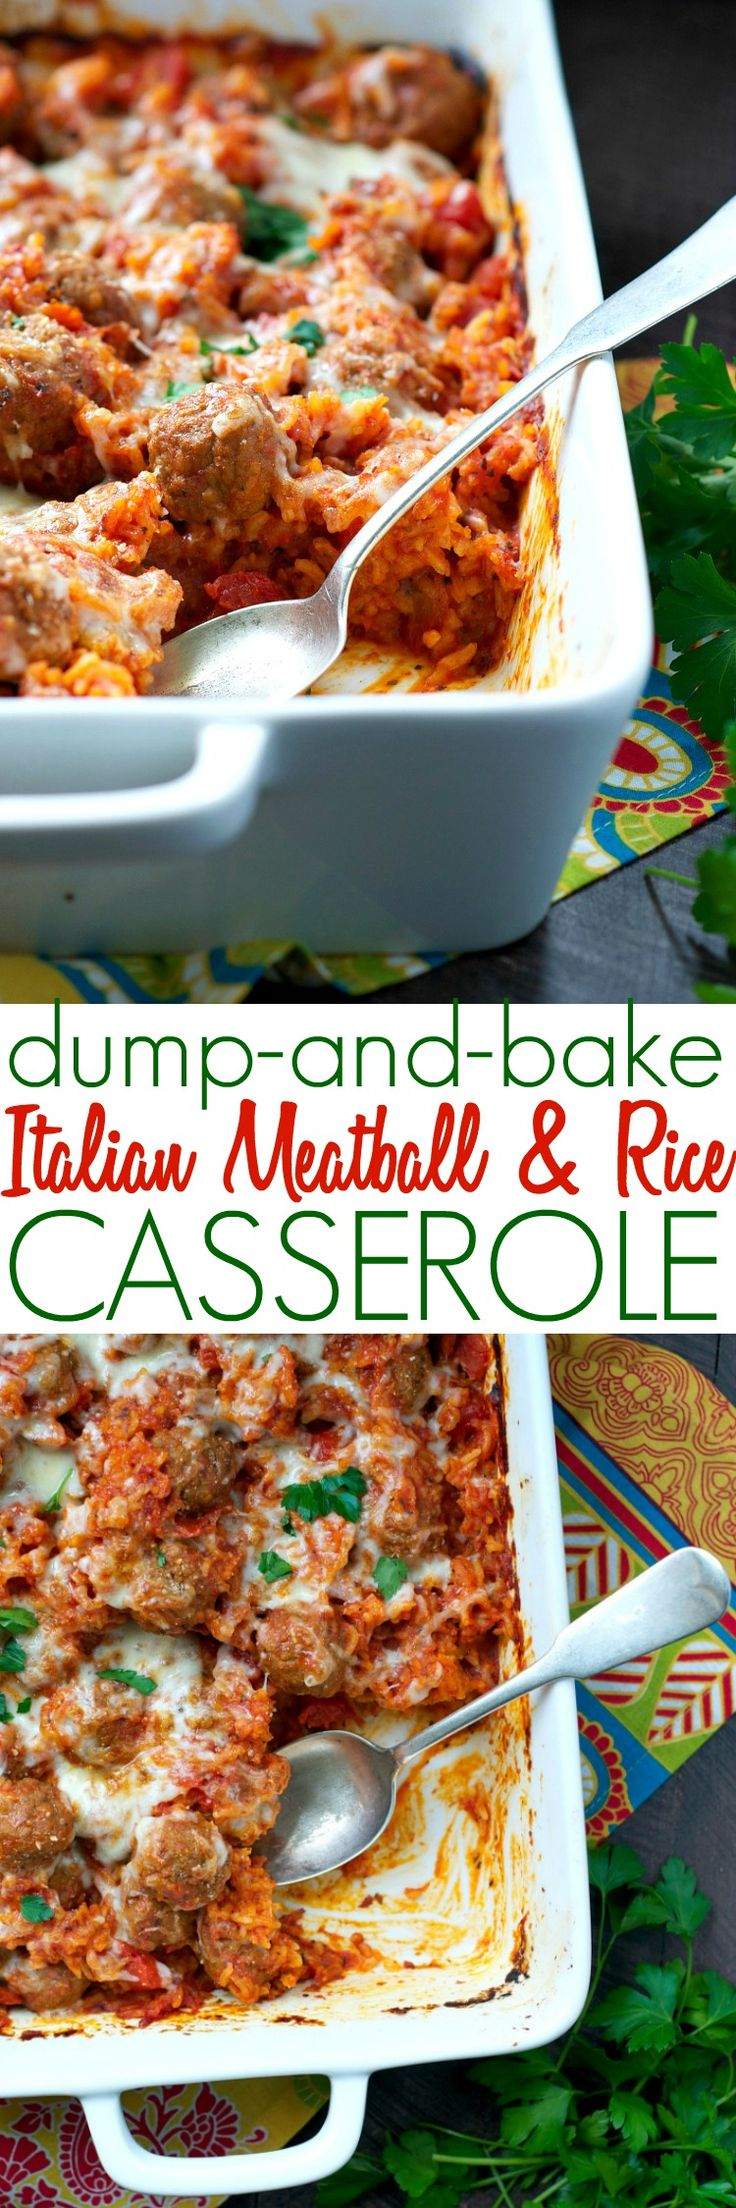 There's no prep necessary for this Dump and Bake Italian Meatball and Rice Casserole! It's the perfect easy dinner solution for your busy weeknights – and your family will love the cozy comfort food! #ad #Rosina #WhatsForDinner @rosinafoods